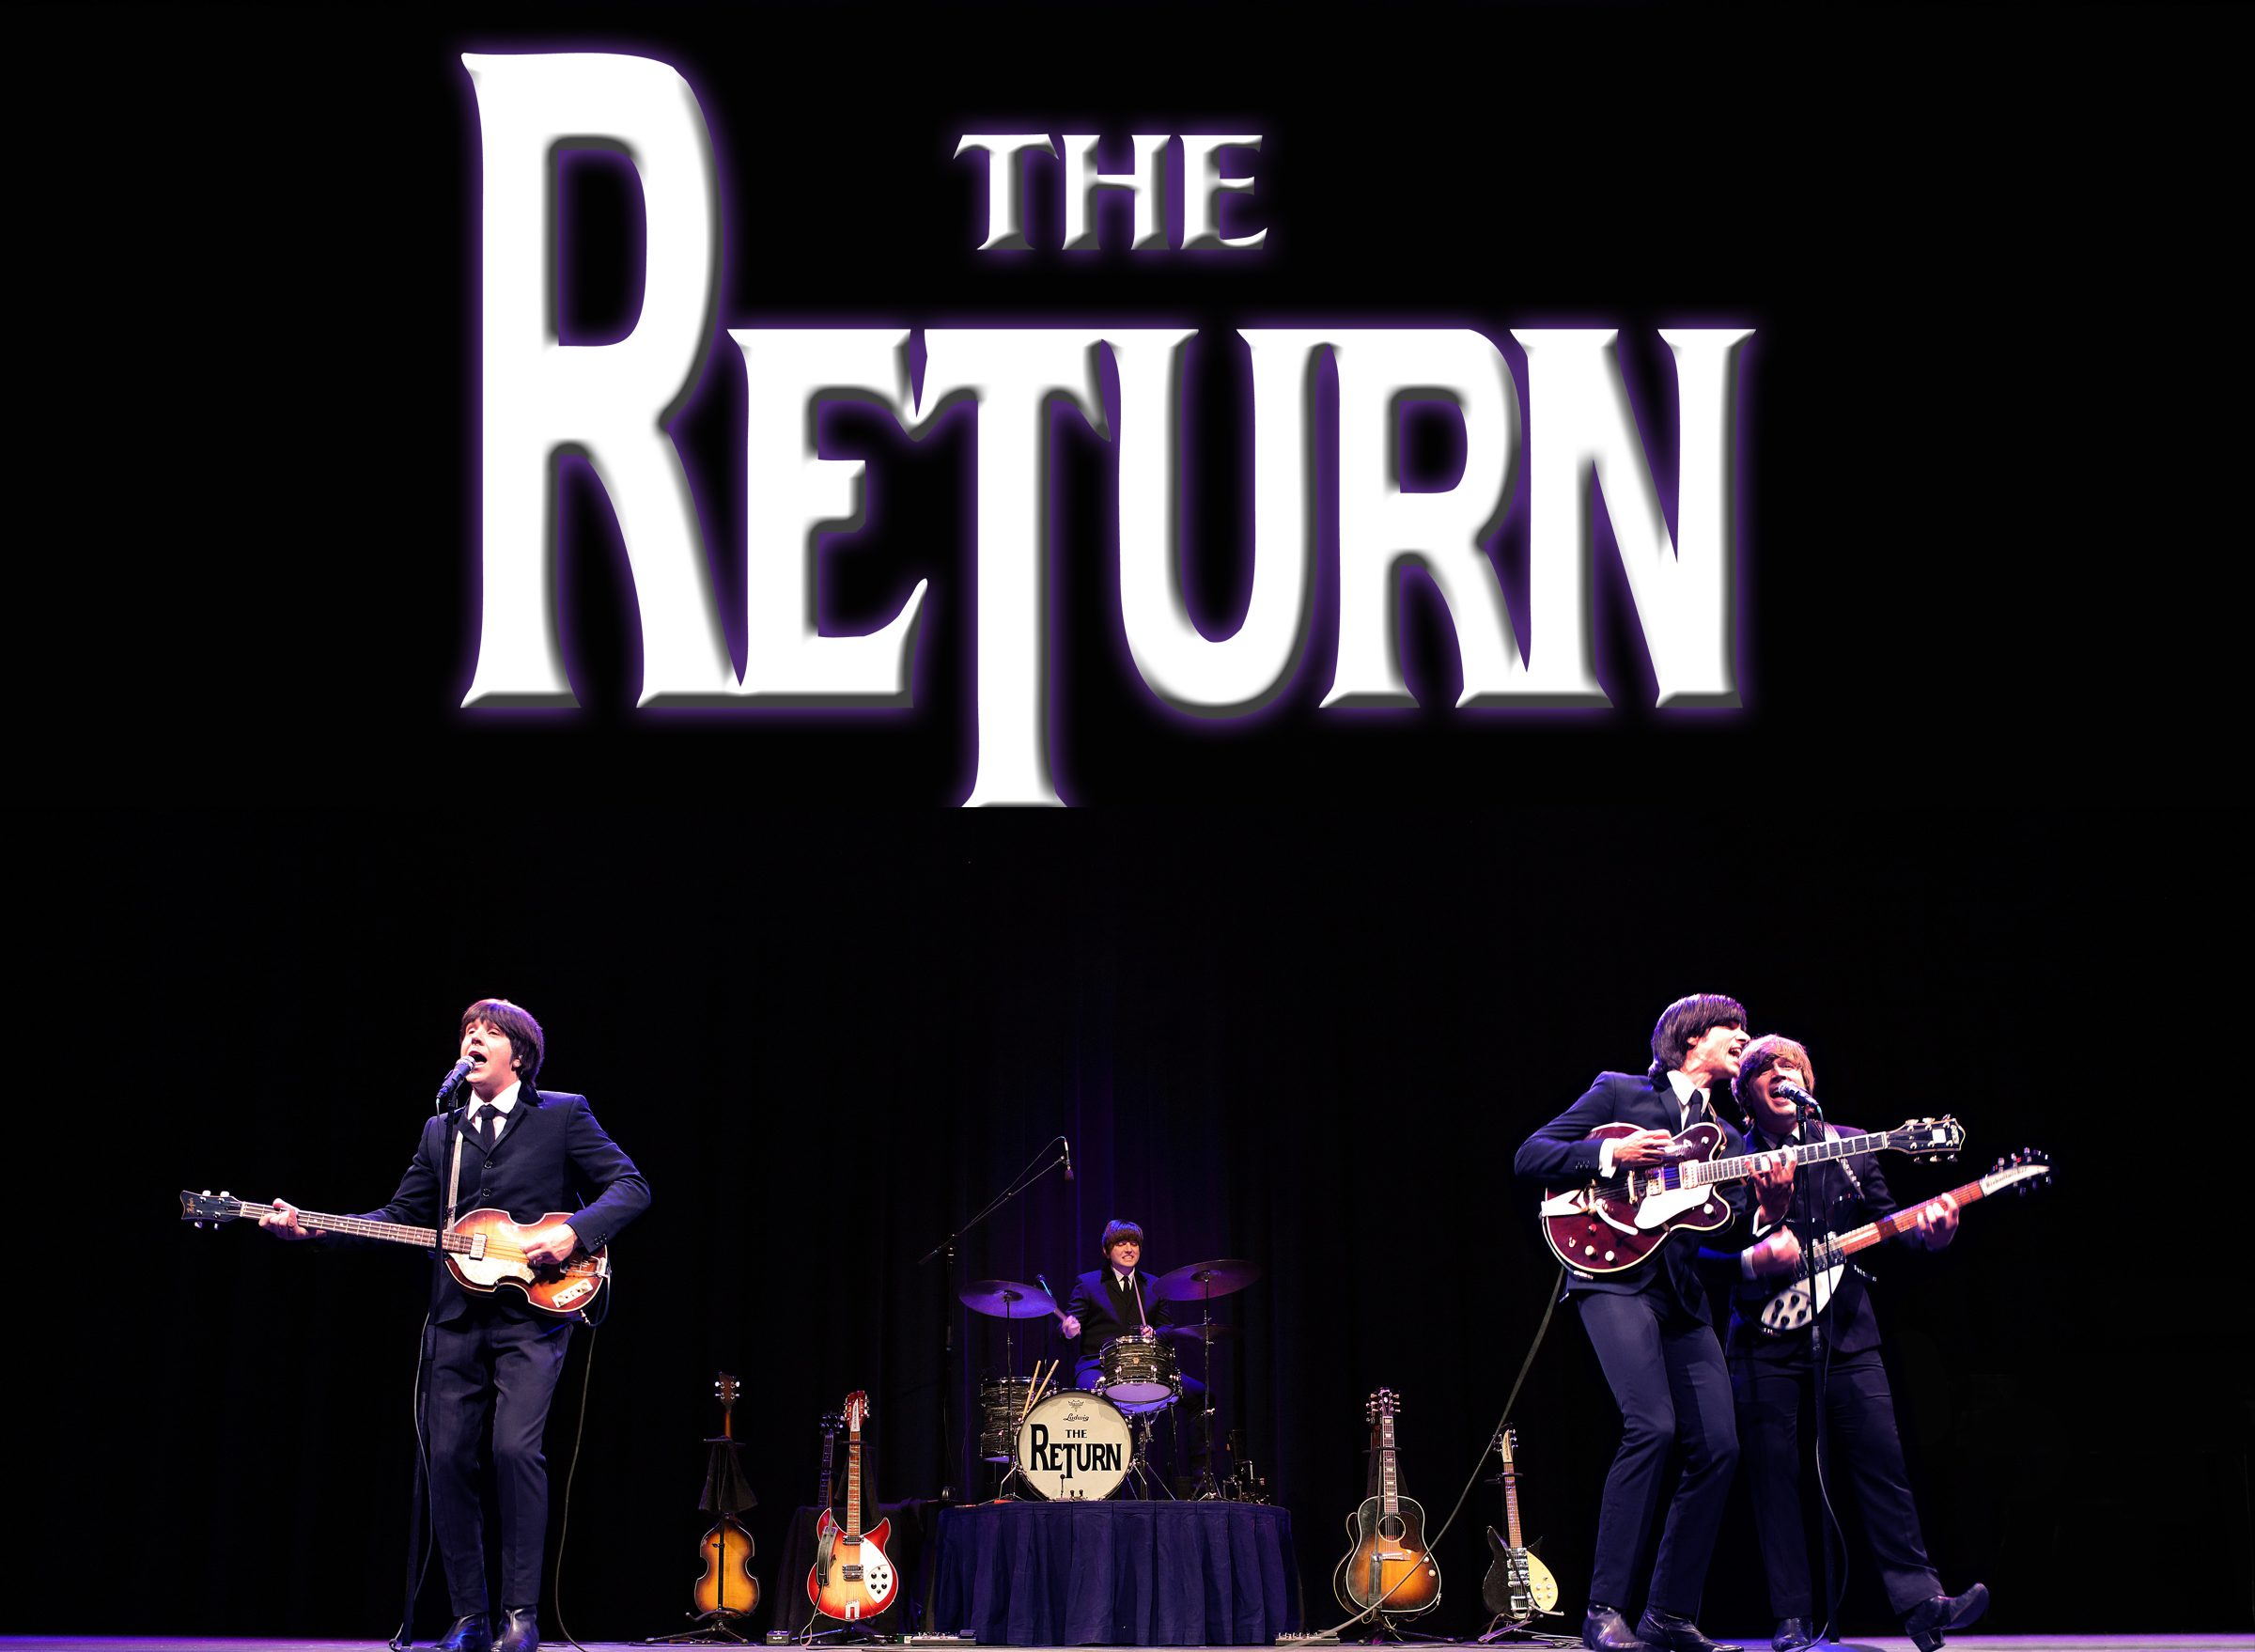 The Return – The Beatles Tribute